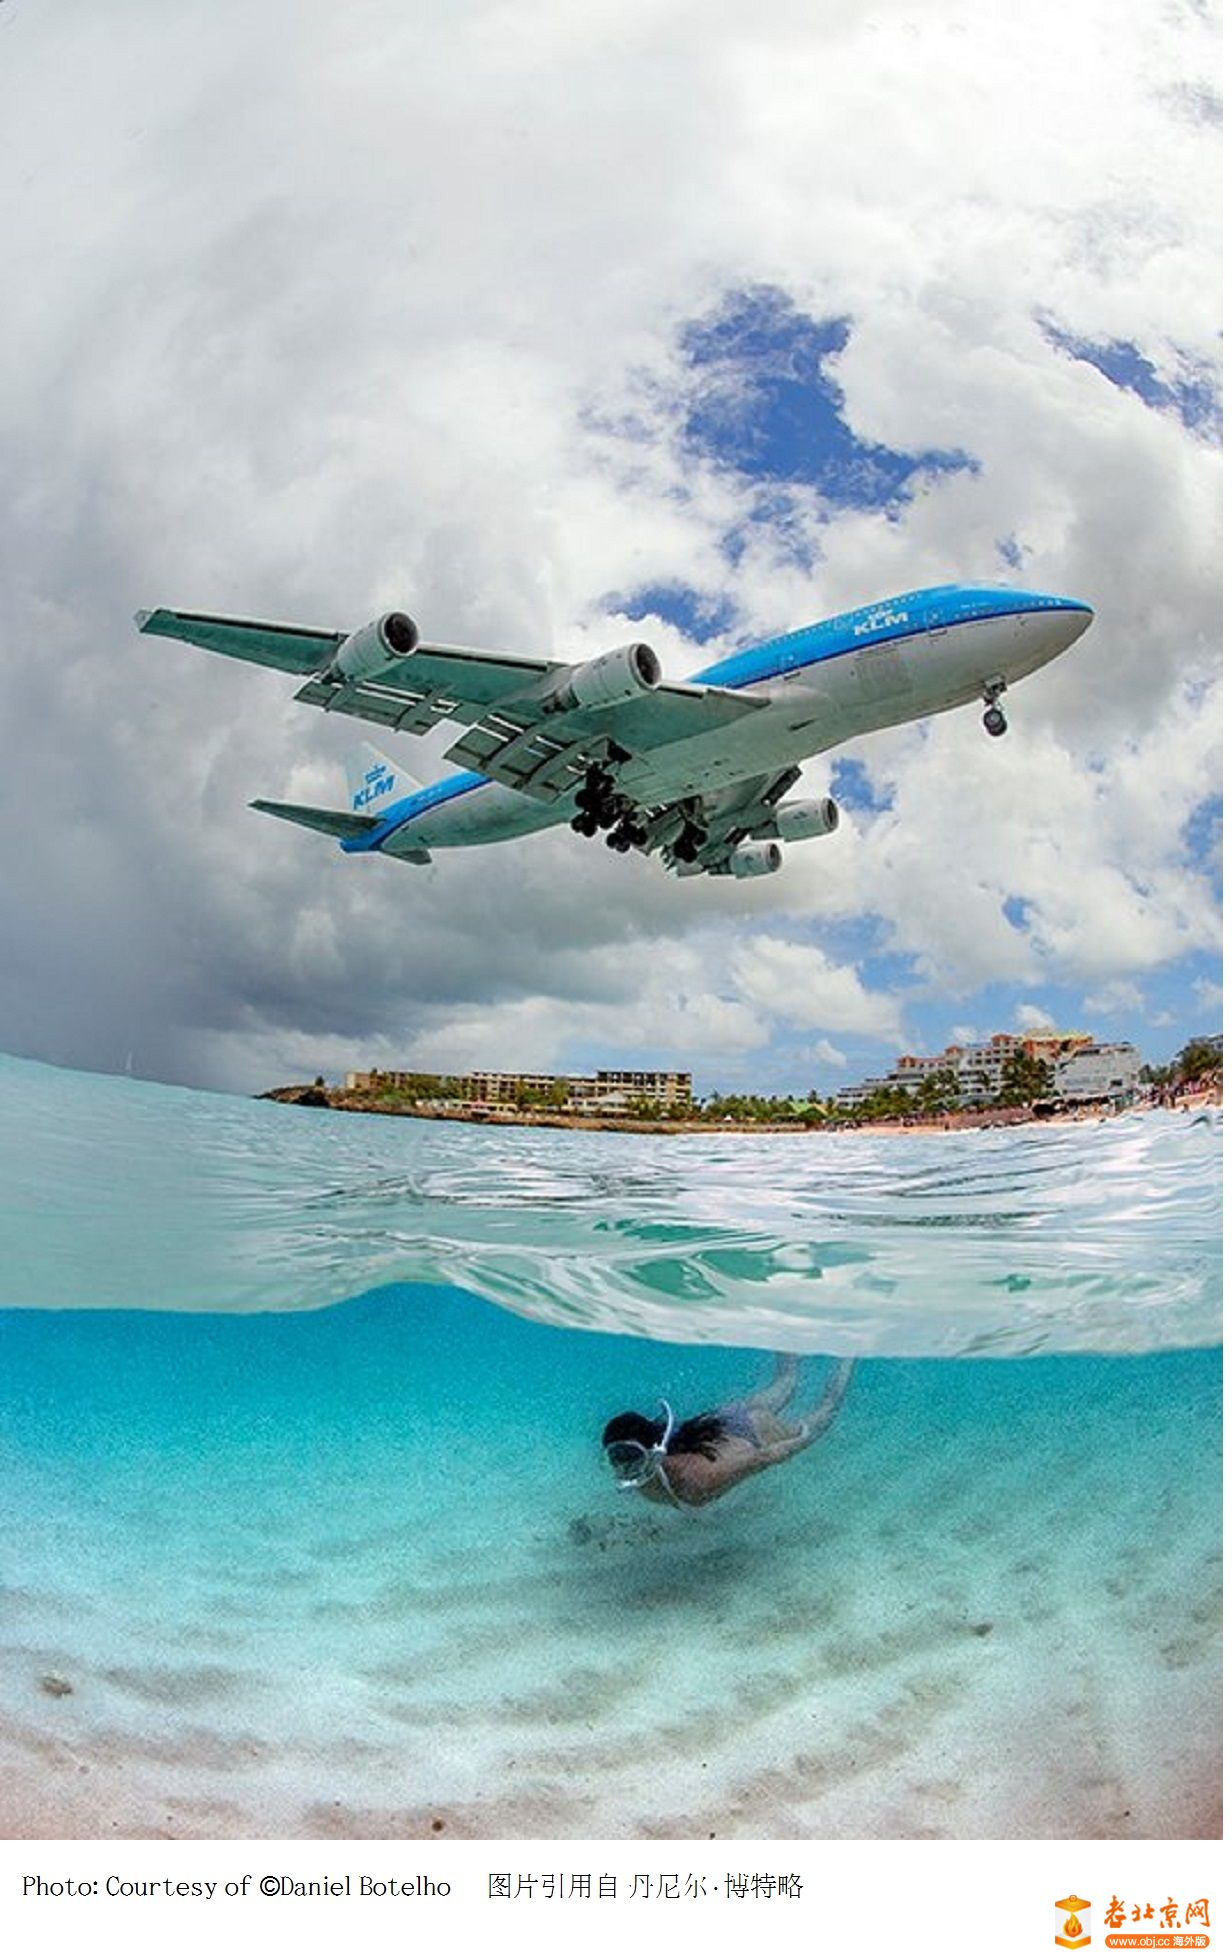 令人惊叹的摄影系列:与机同游 Swimming with Jets,' a stunning photo series